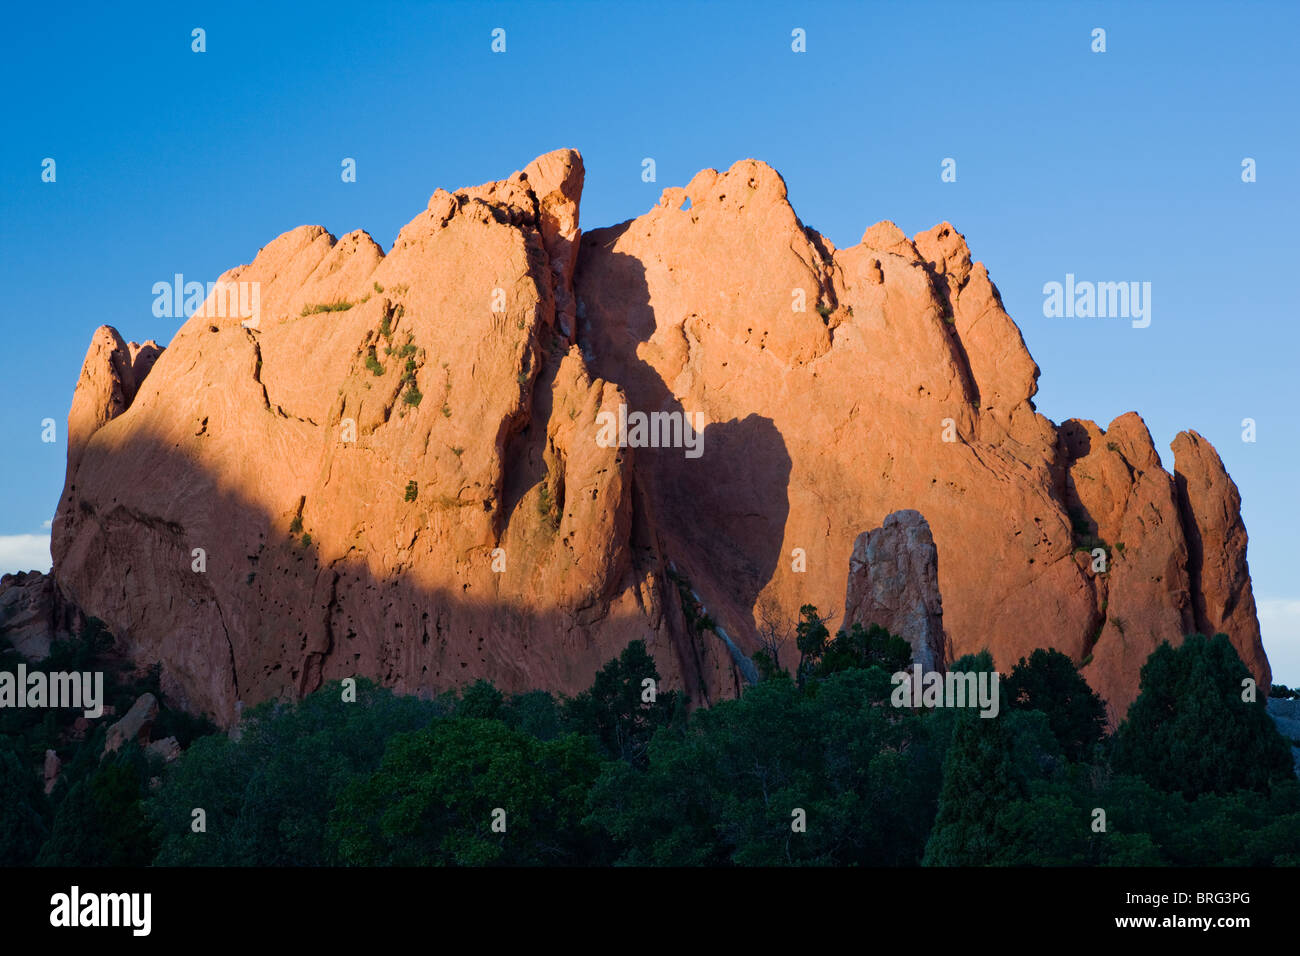 North Gateway Rock; years of erosion leave sandstone formations in the Garden of the Gods, Colorado Springs, Colorado, - Stock Image